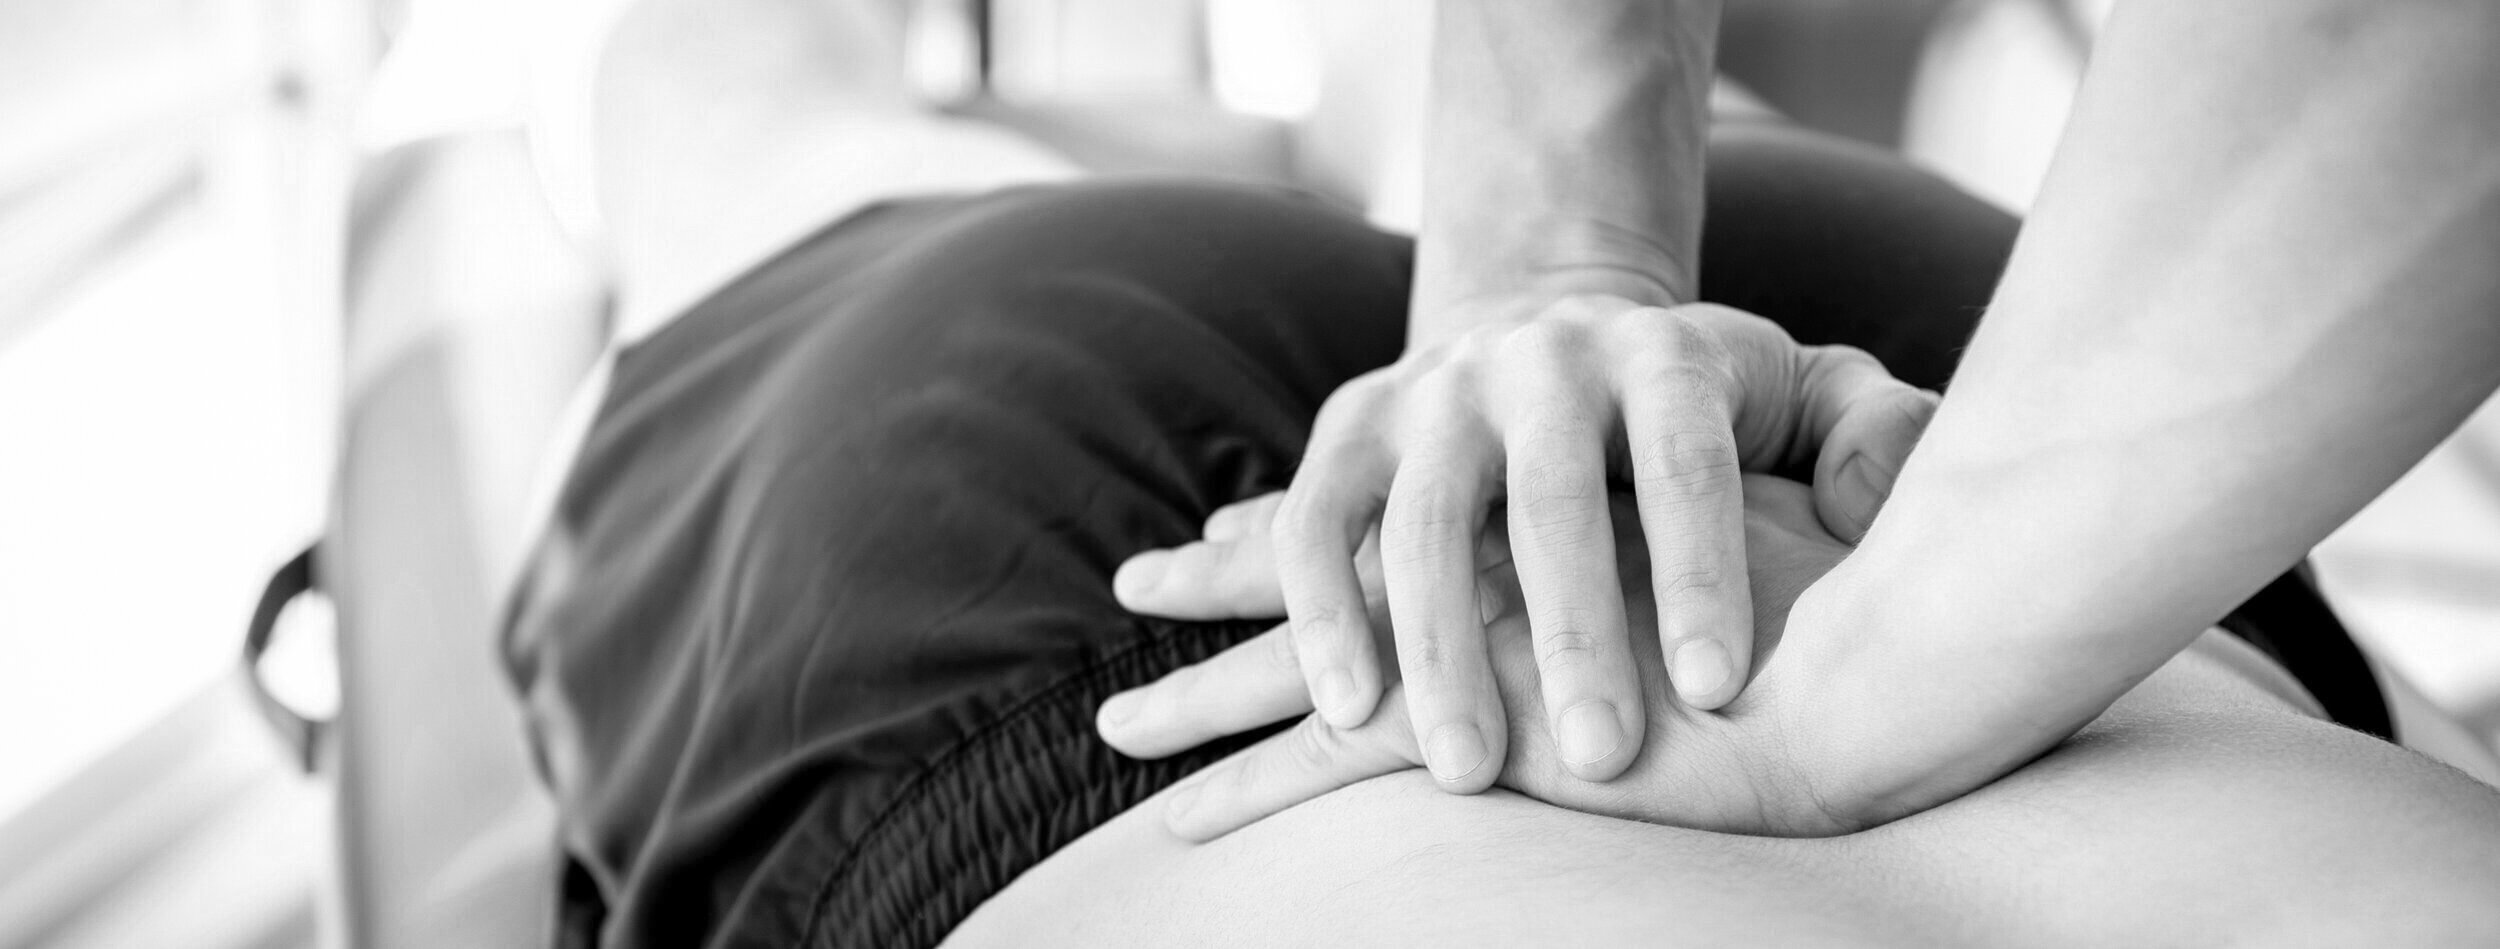 All Babe Massage growing bodies wellness — vancouver island osteopathy